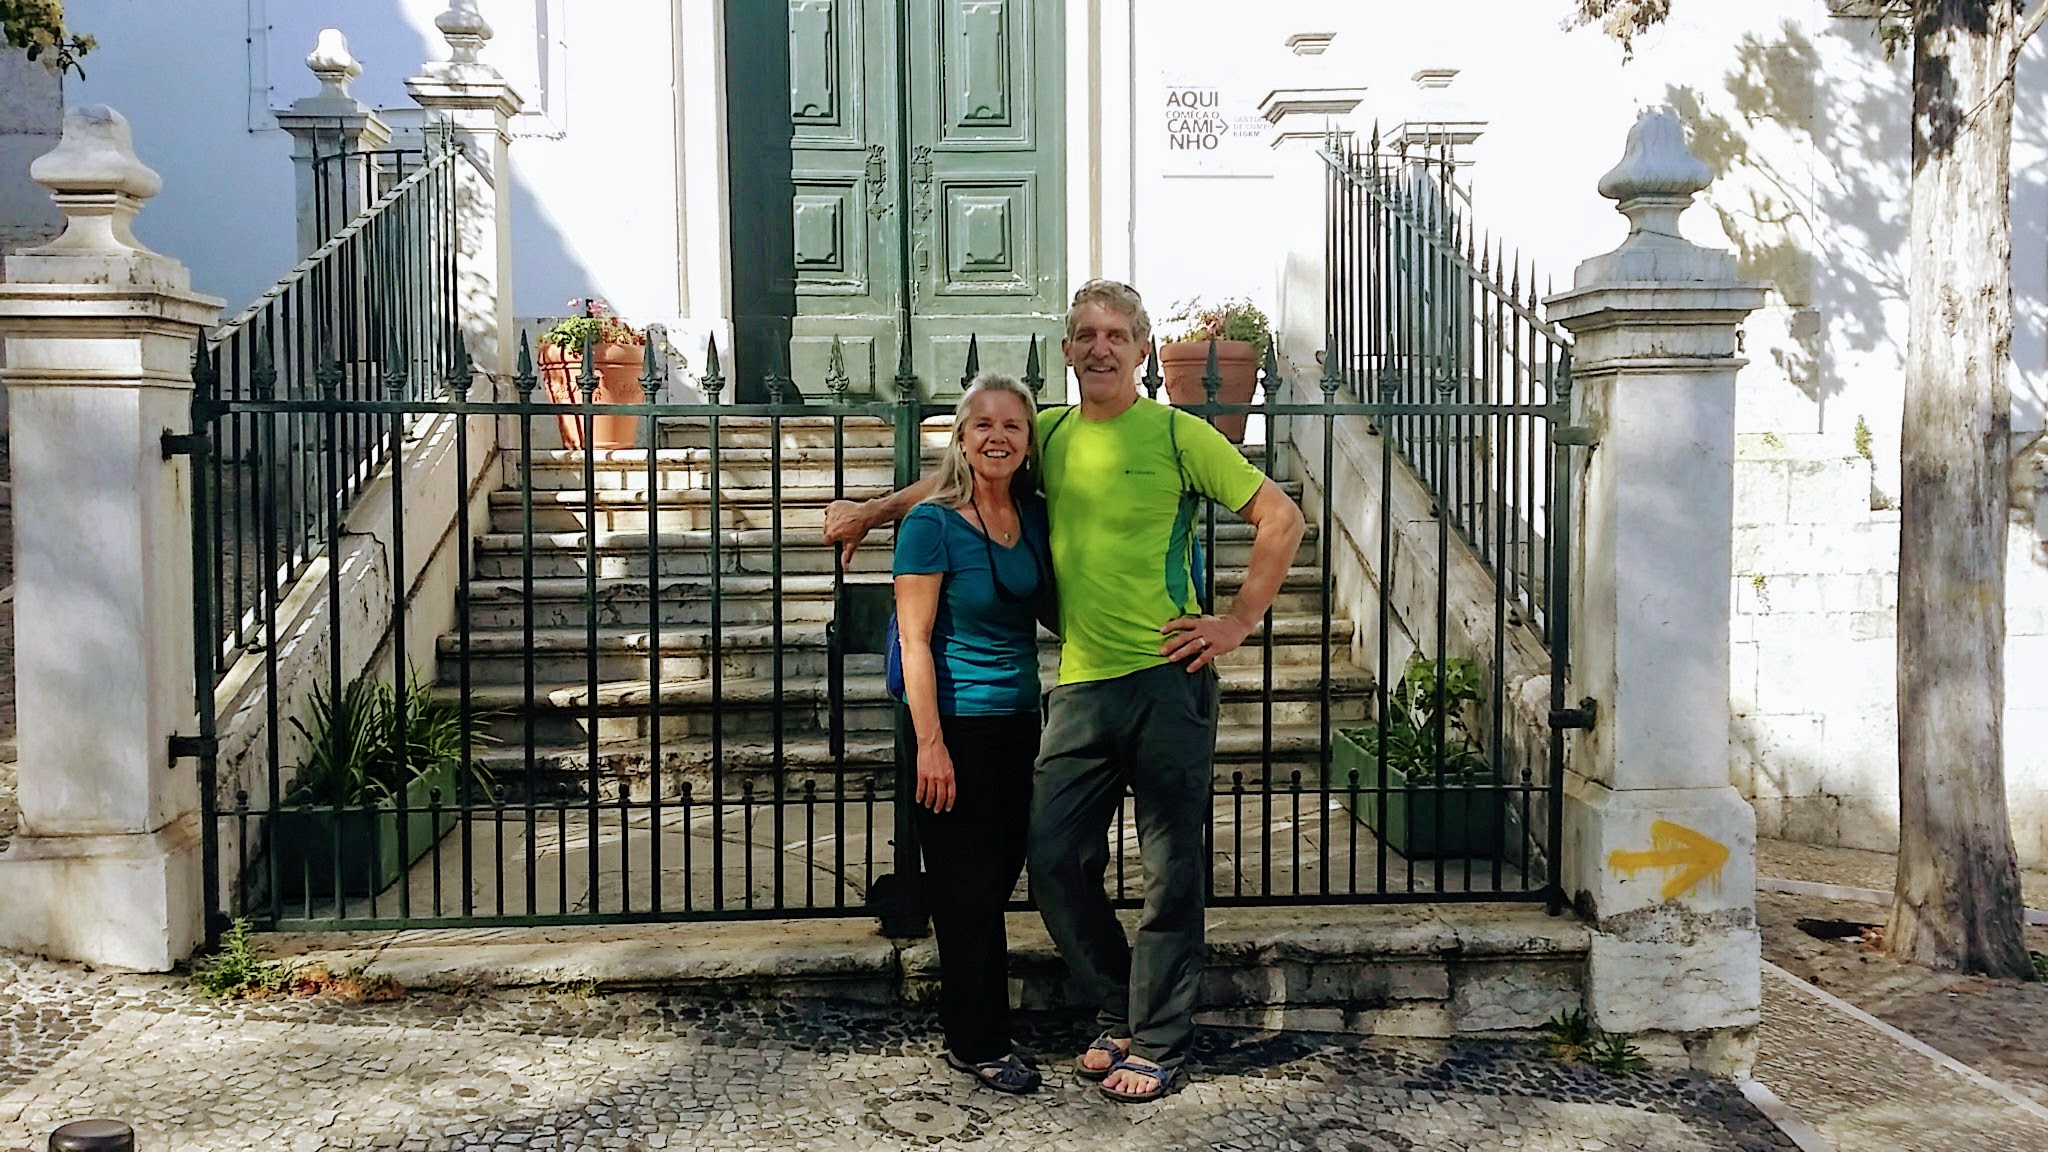 Elle and Rich at the Official Start of the Camino Portugués